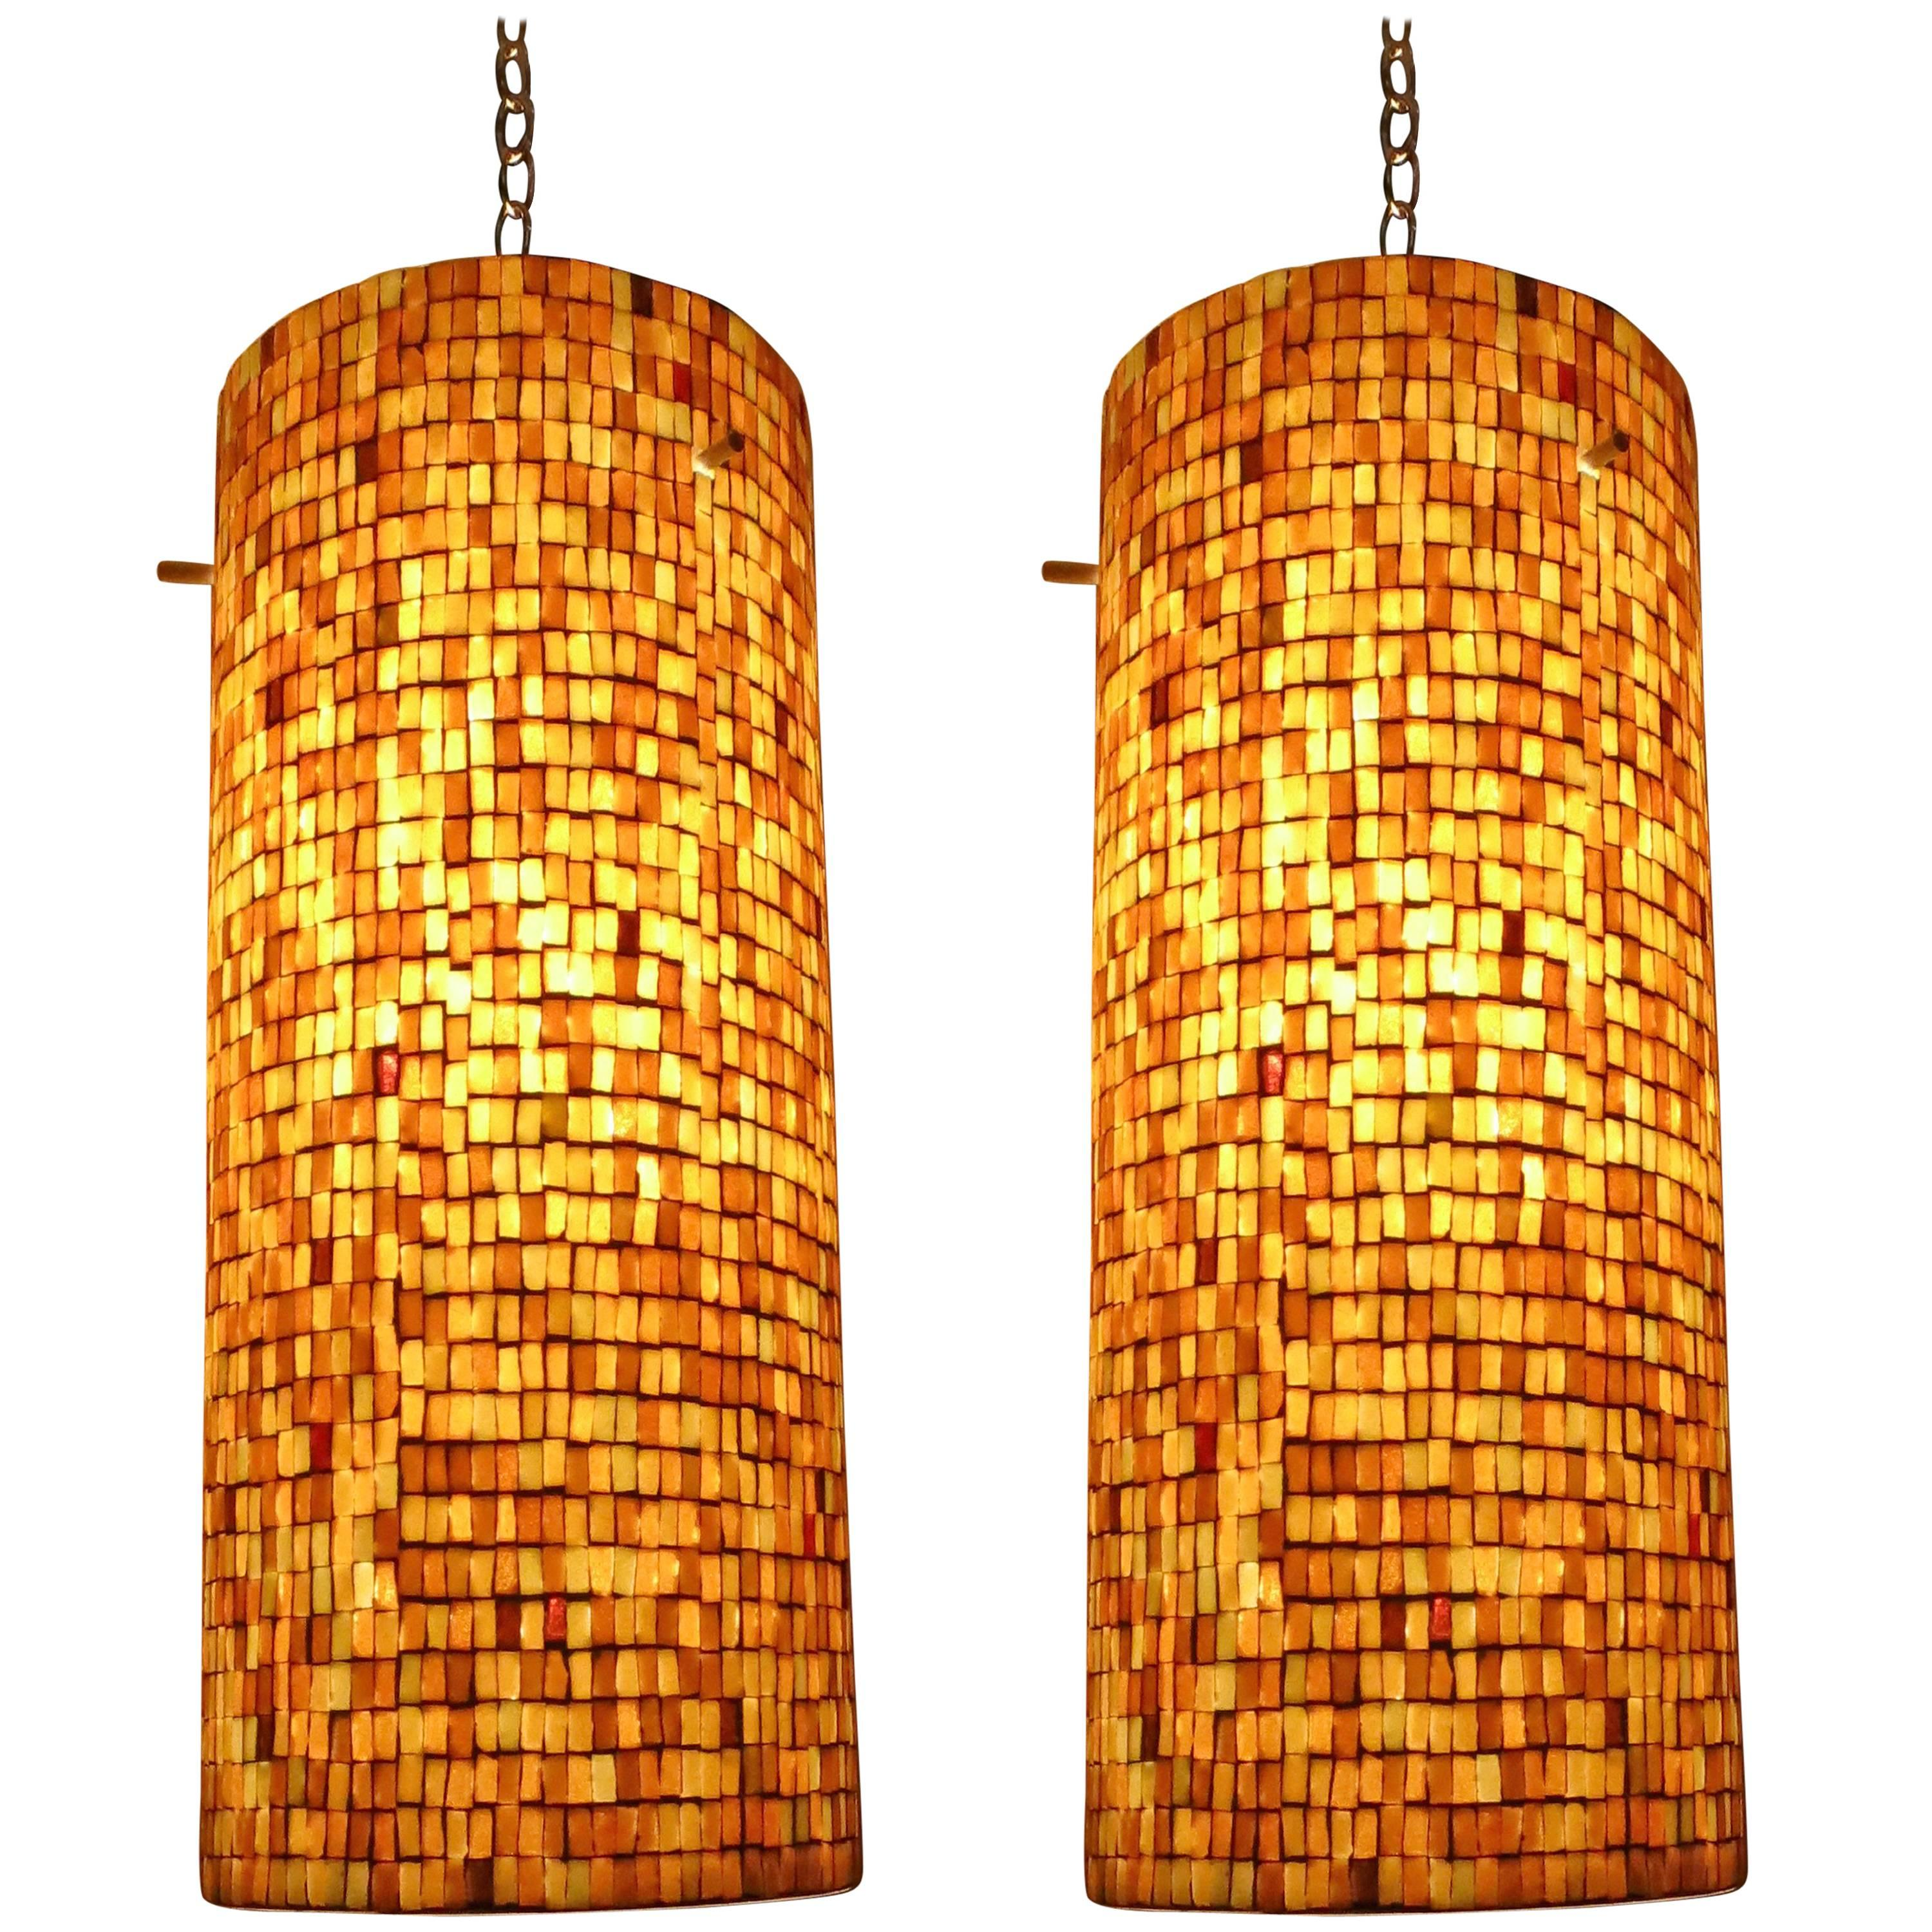 Pair of ceiling fixtures in mosaic tiles made in usa c 1960 for sale at 1stdibs